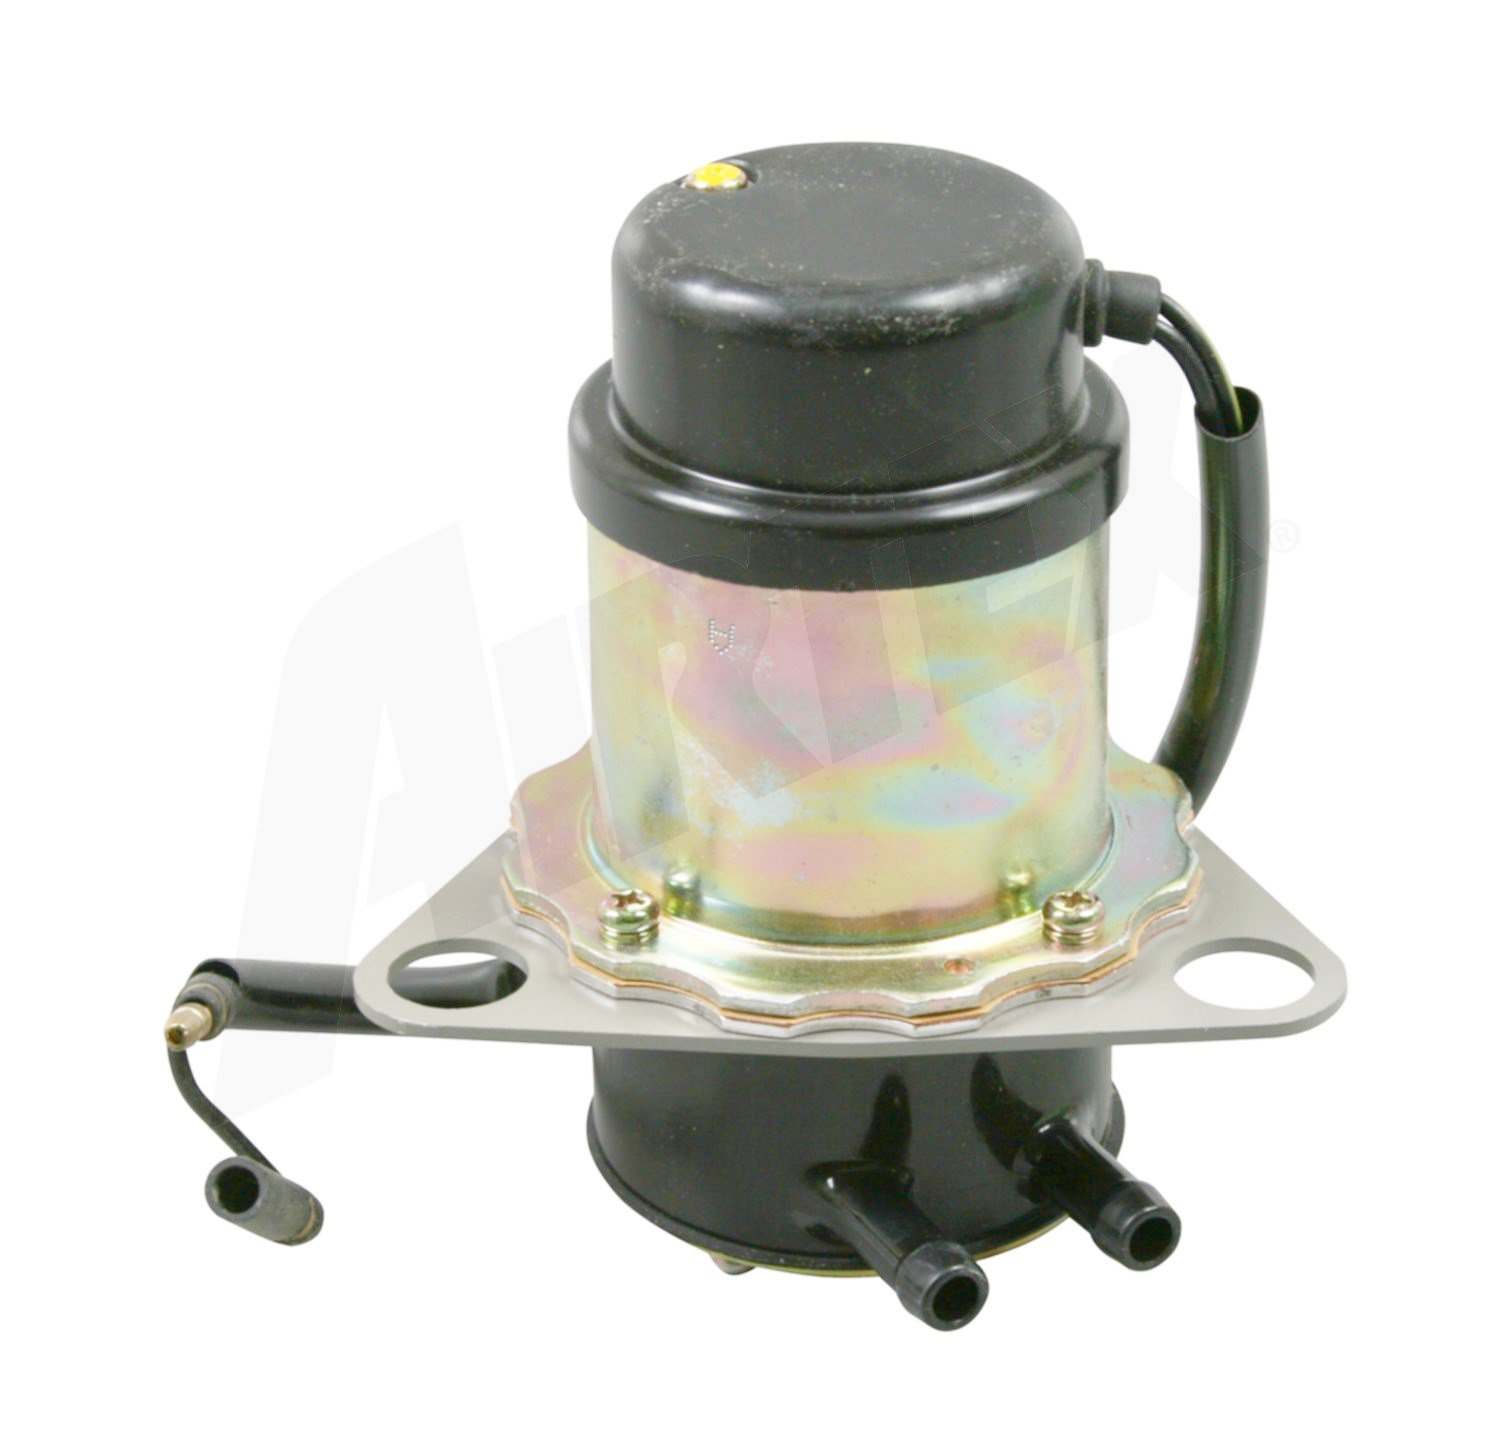 Fuel Pump Honda Motorcycle Fuel Pump Kawasaki Suzuki Fuel Pump 2psi-3psi 18gph